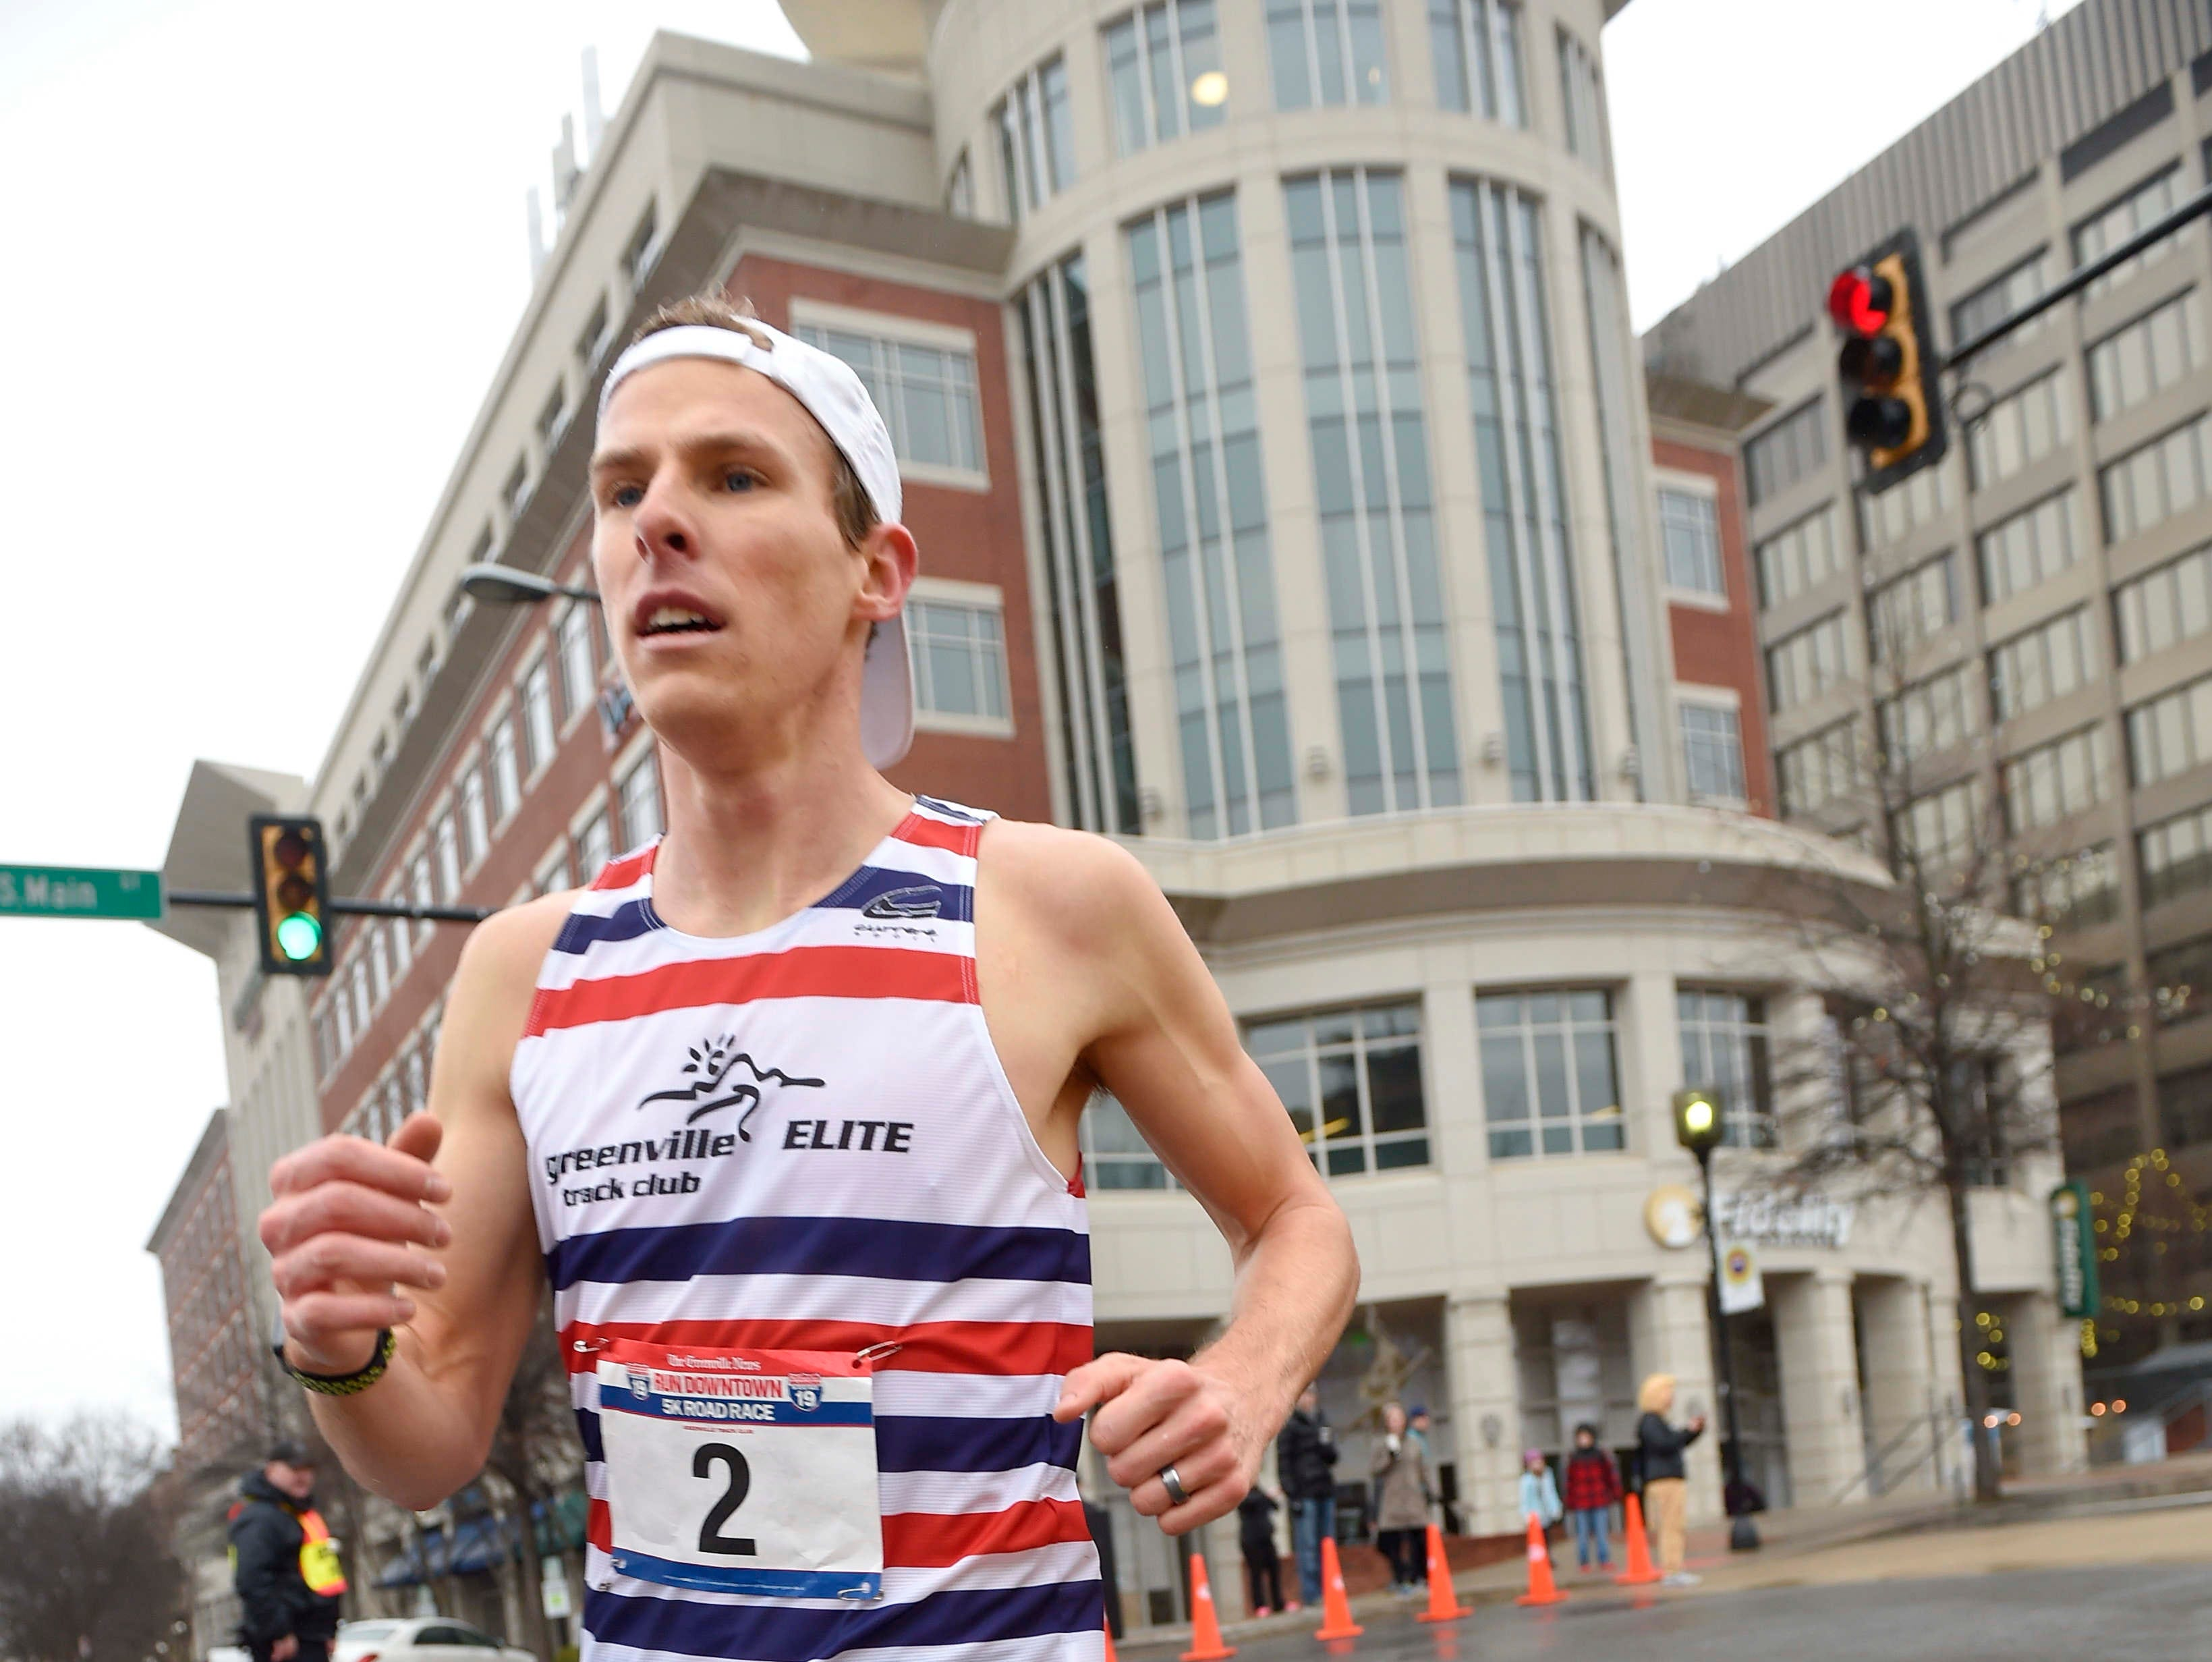 Joseph Niemiec won the men's division with a time of 14:52. The annual Greenville News Run Downtown 5K was held Saturday, Jan. 19, 2019.